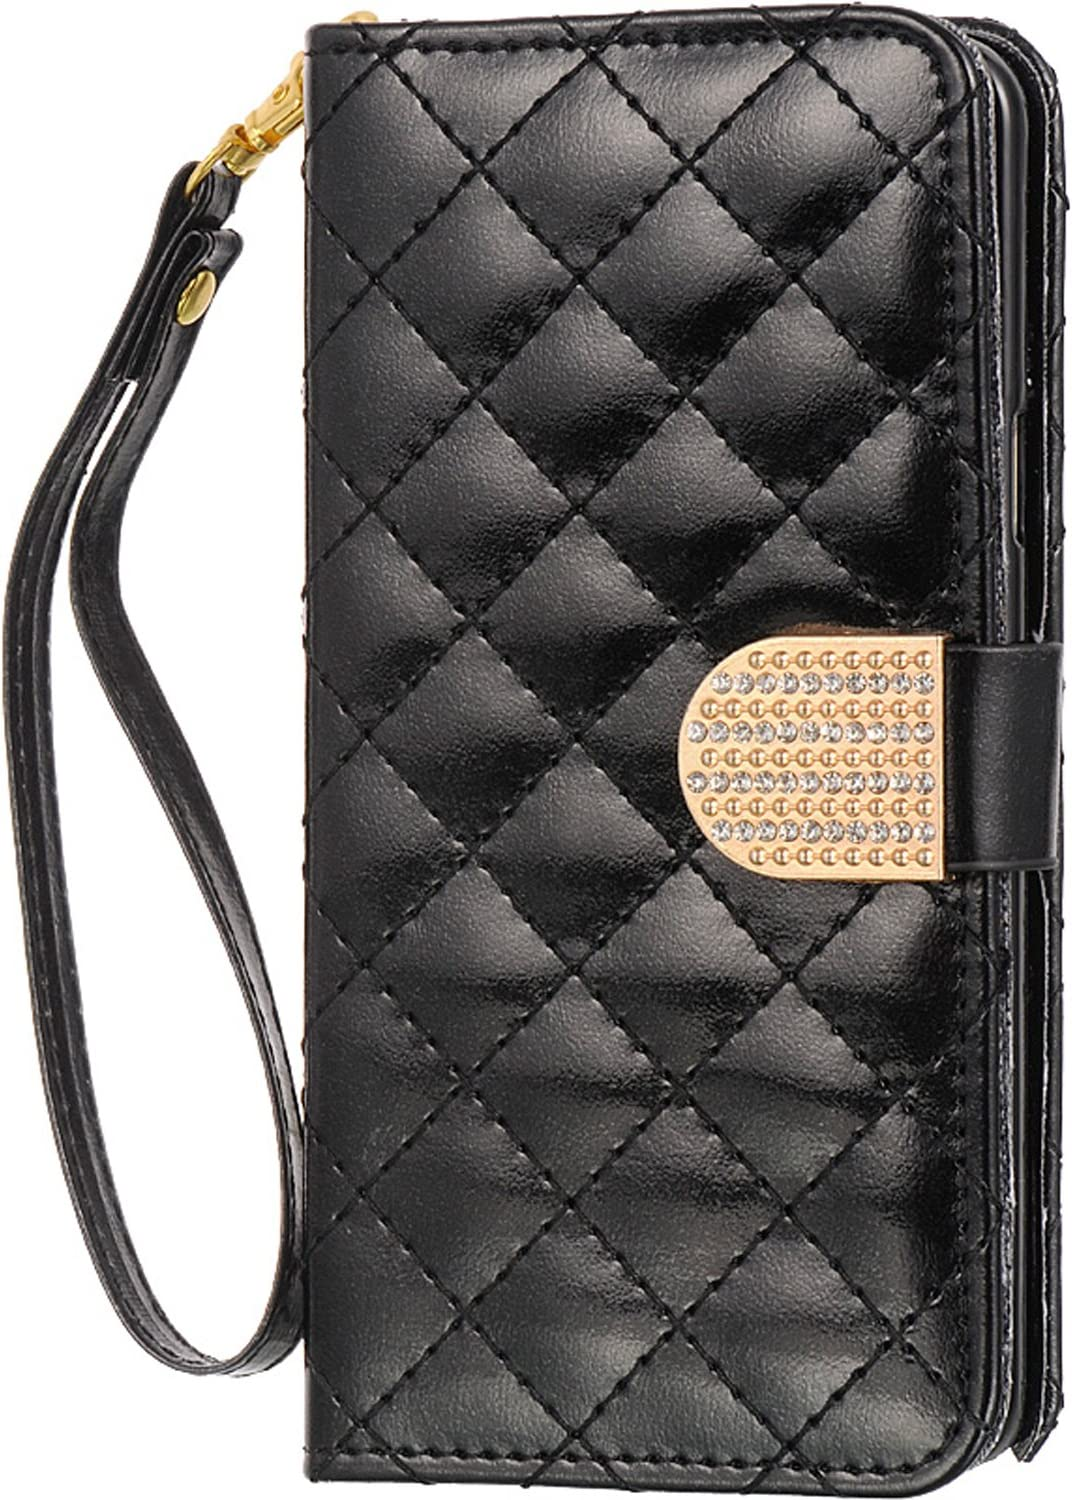 SLectionAccess Shiny Quilt Design Wallet Pouch with Removable Wristlet for Samsung Galaxy Note 5 - Black